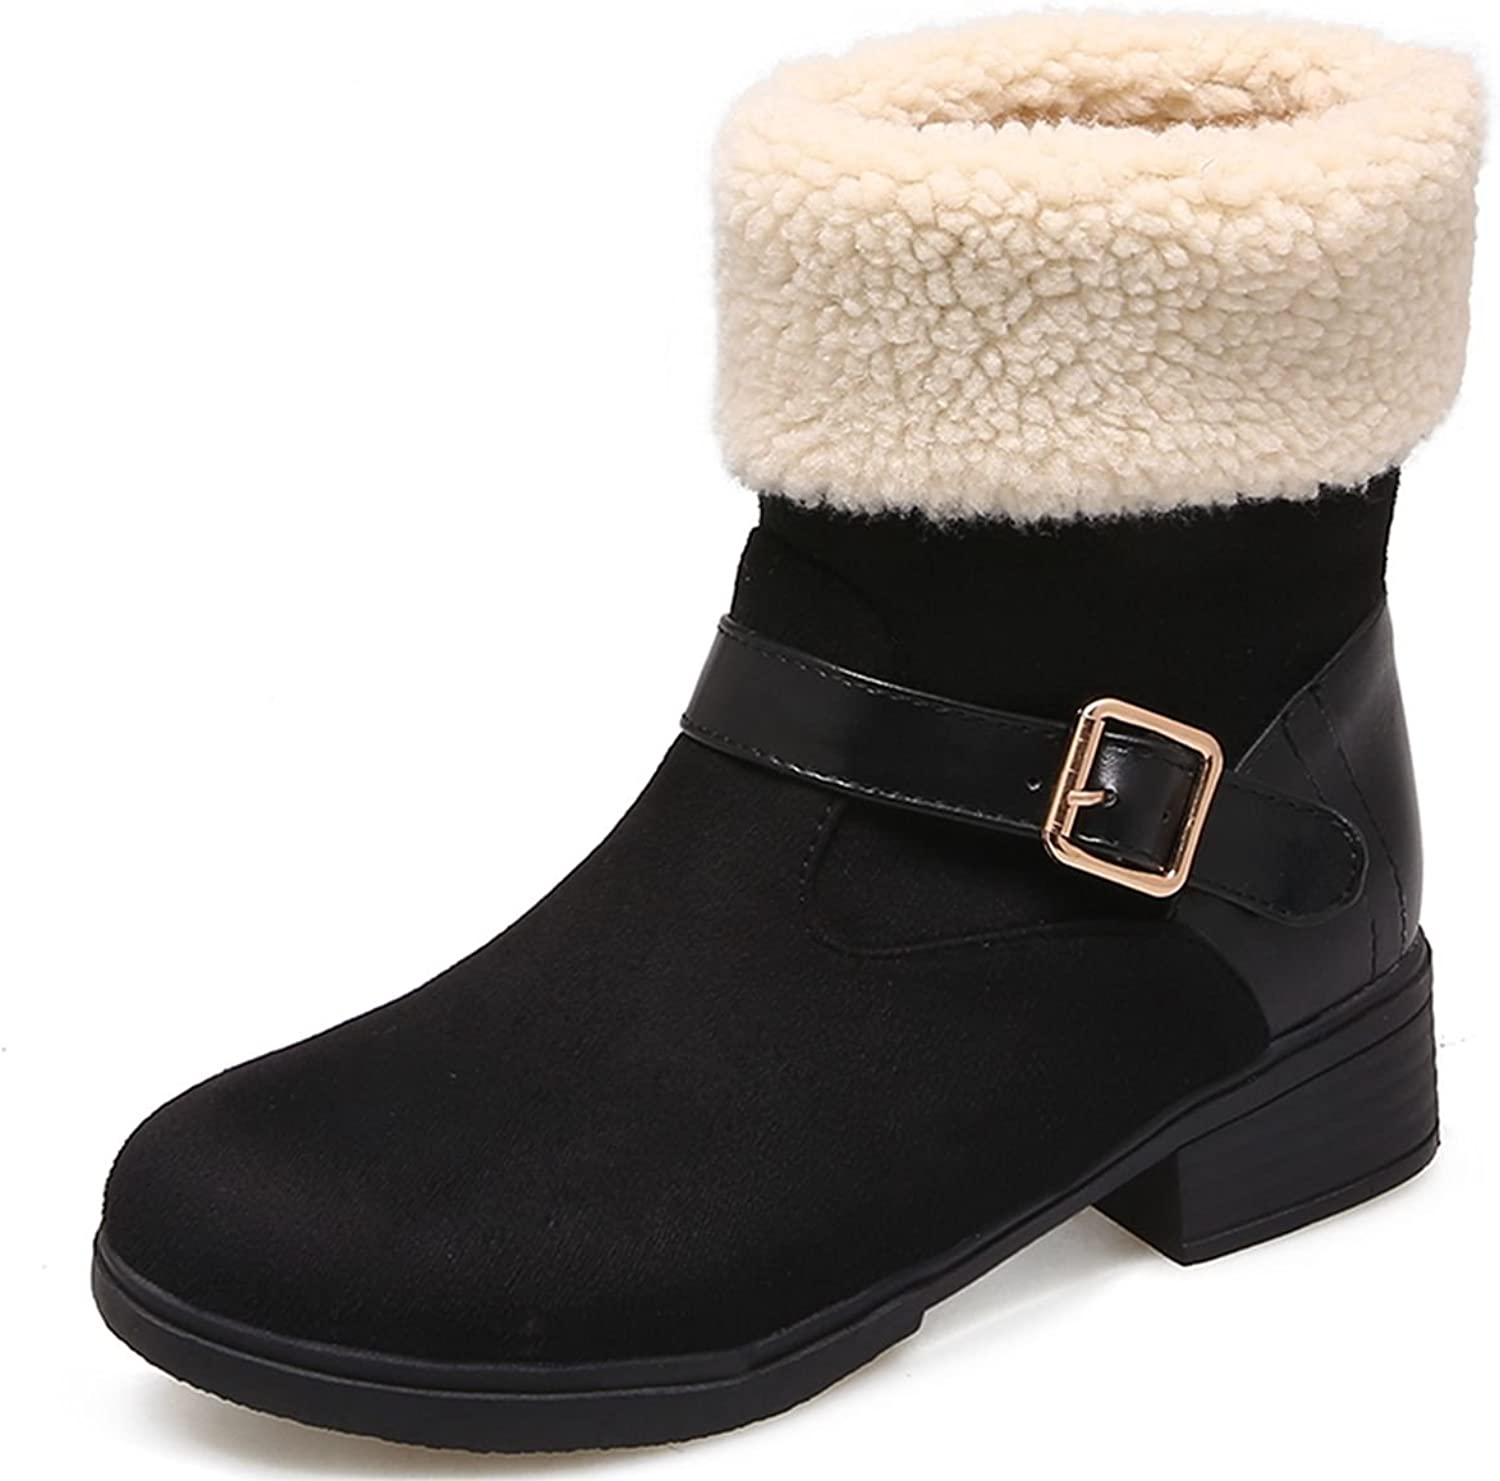 DoraTasia Women's Synthetic Faux Fur Low Heel Buckle Strap Ankle Snow Boots